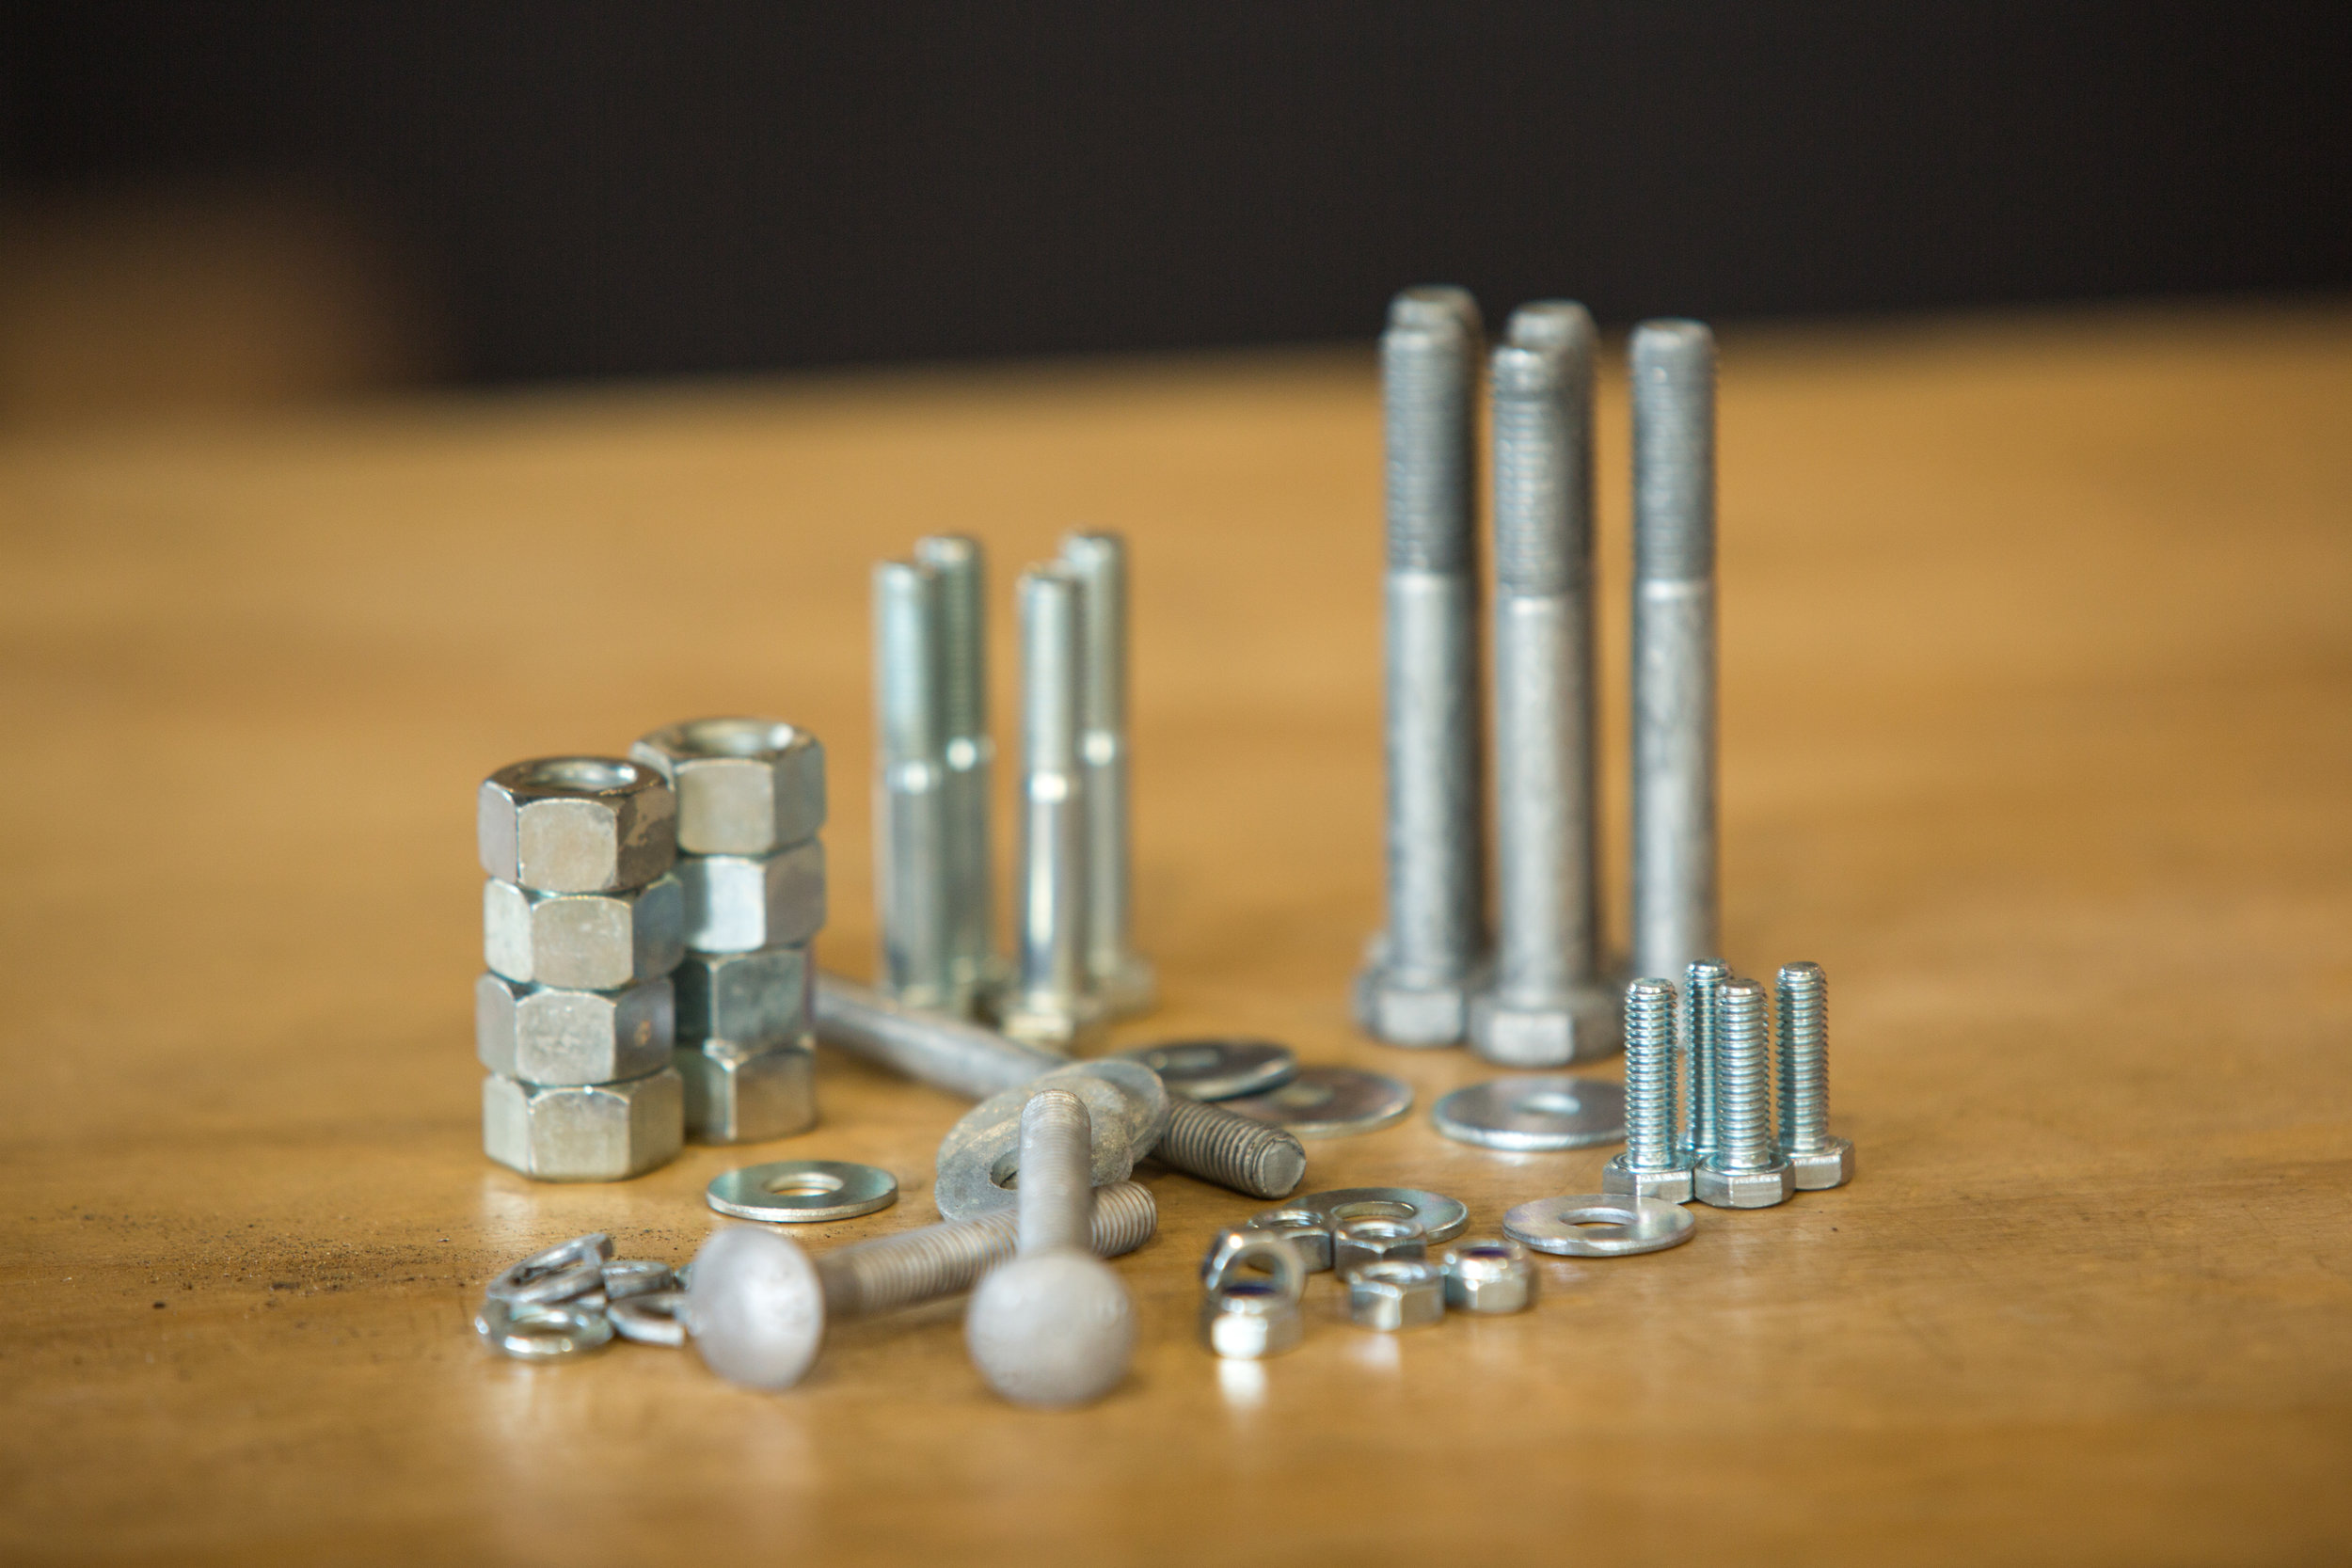 Fasteners - We have a variety of fasteners in store and in stock.